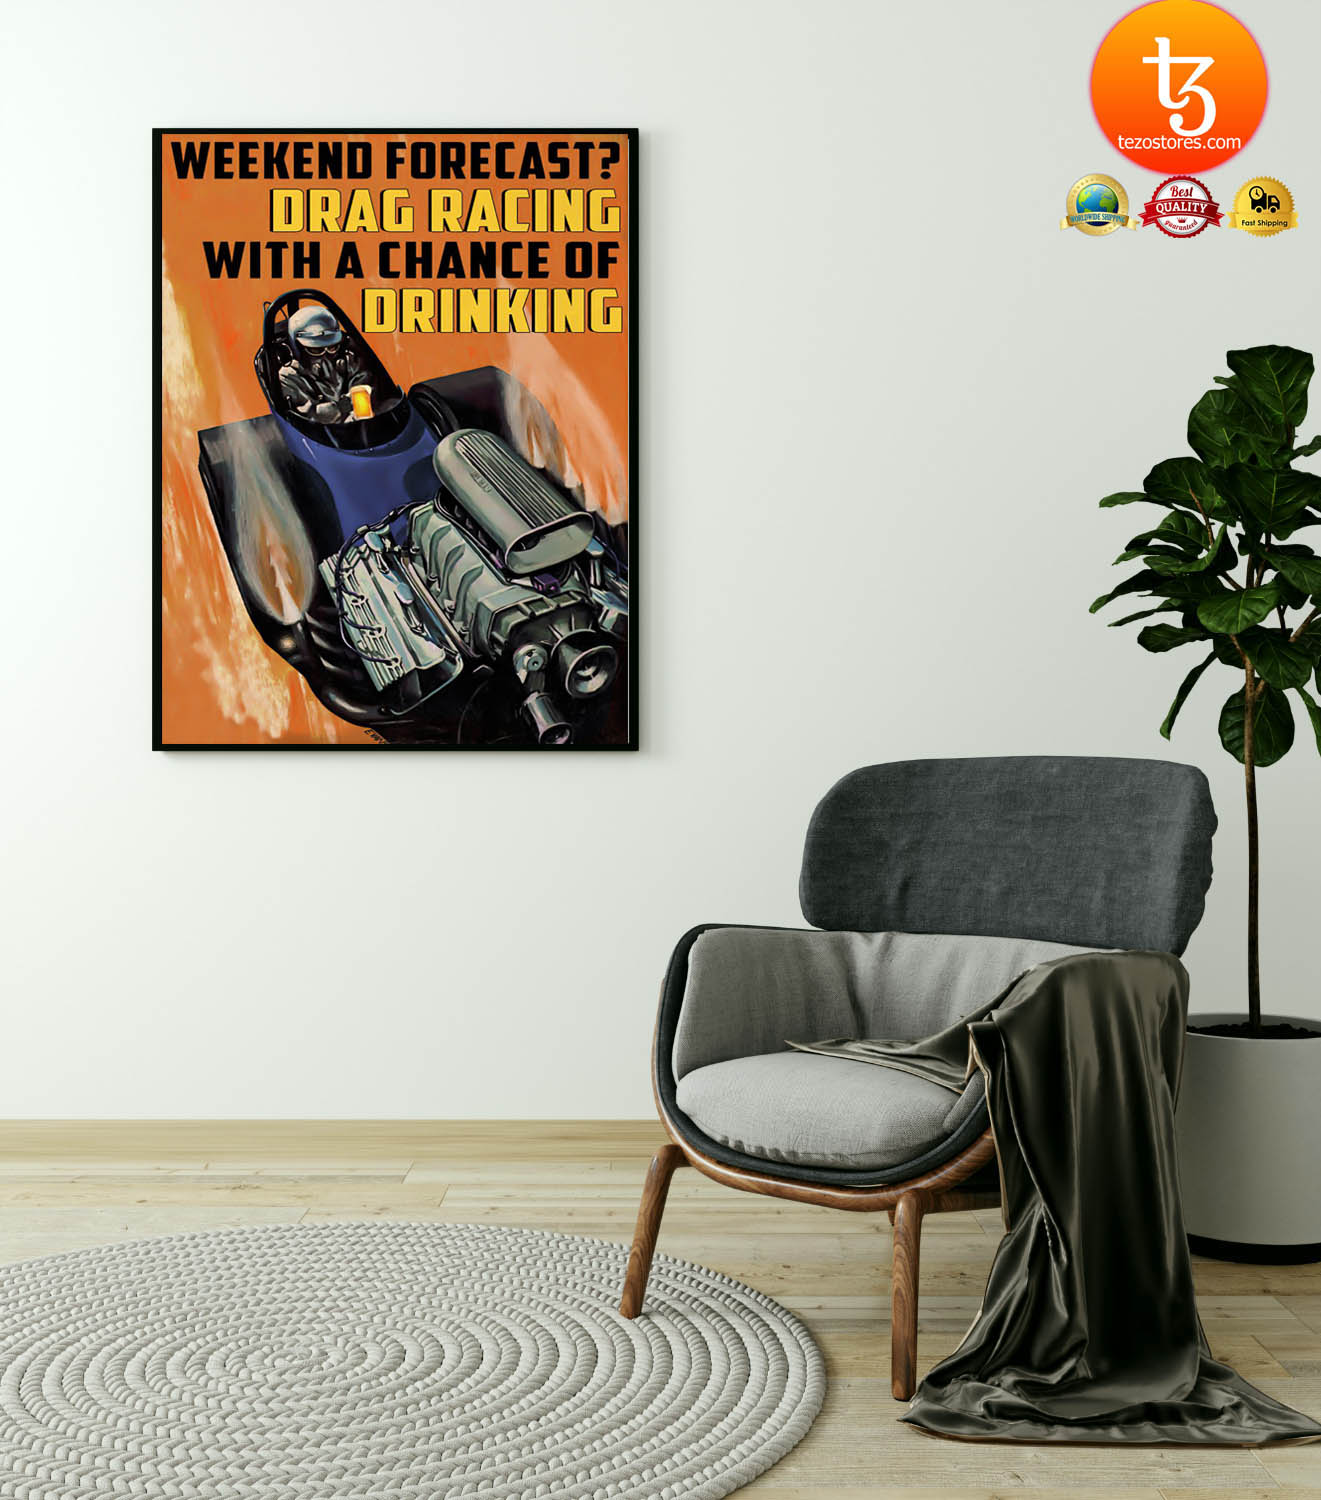 Weekend forecast drag racing with a chance of drinking poster 19